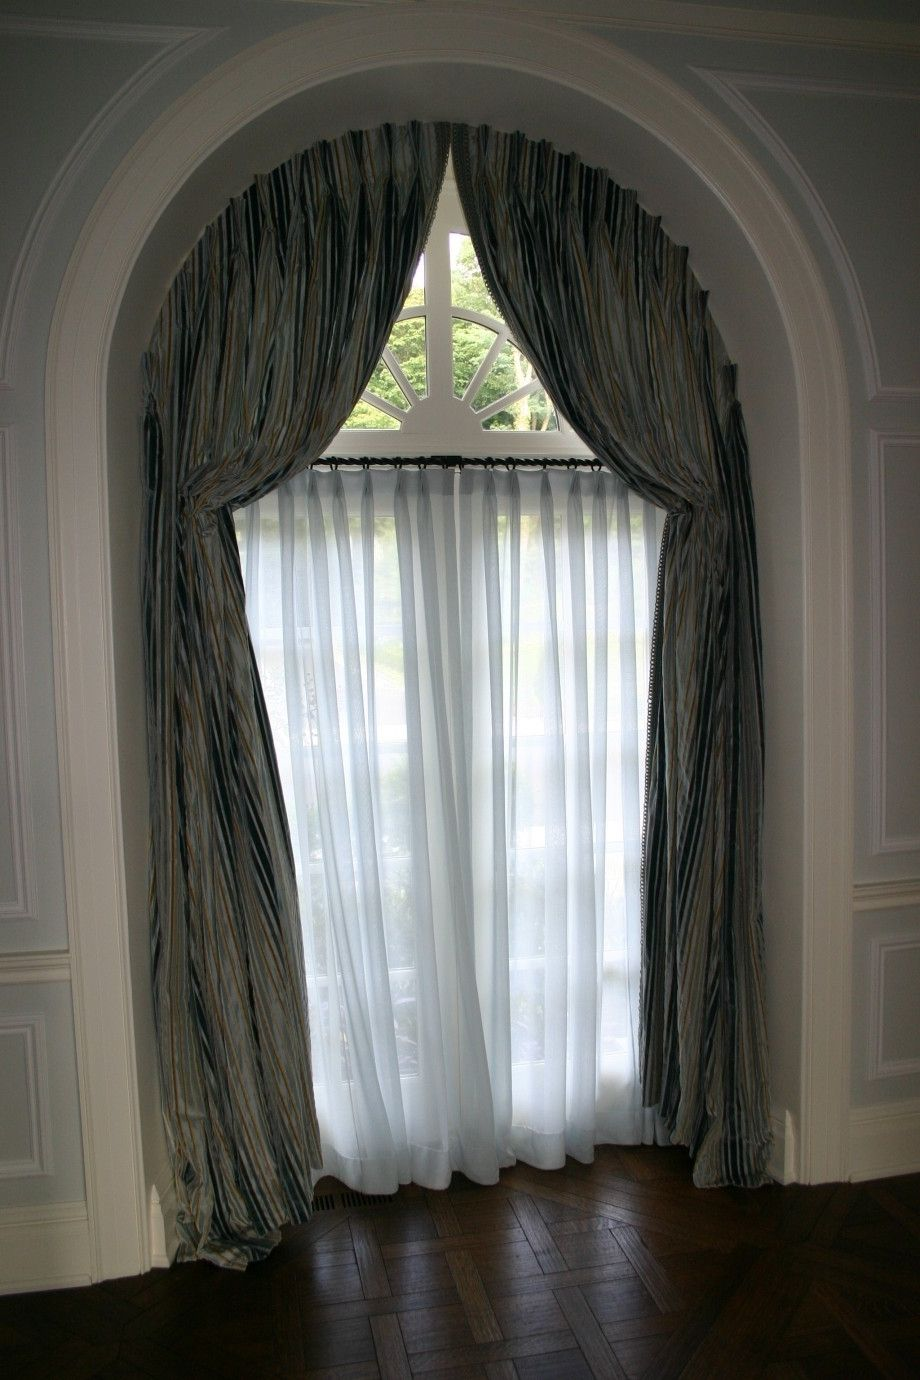 Window coverings arched windows  curtains for half moon windows  curtains  pinterest  half moon